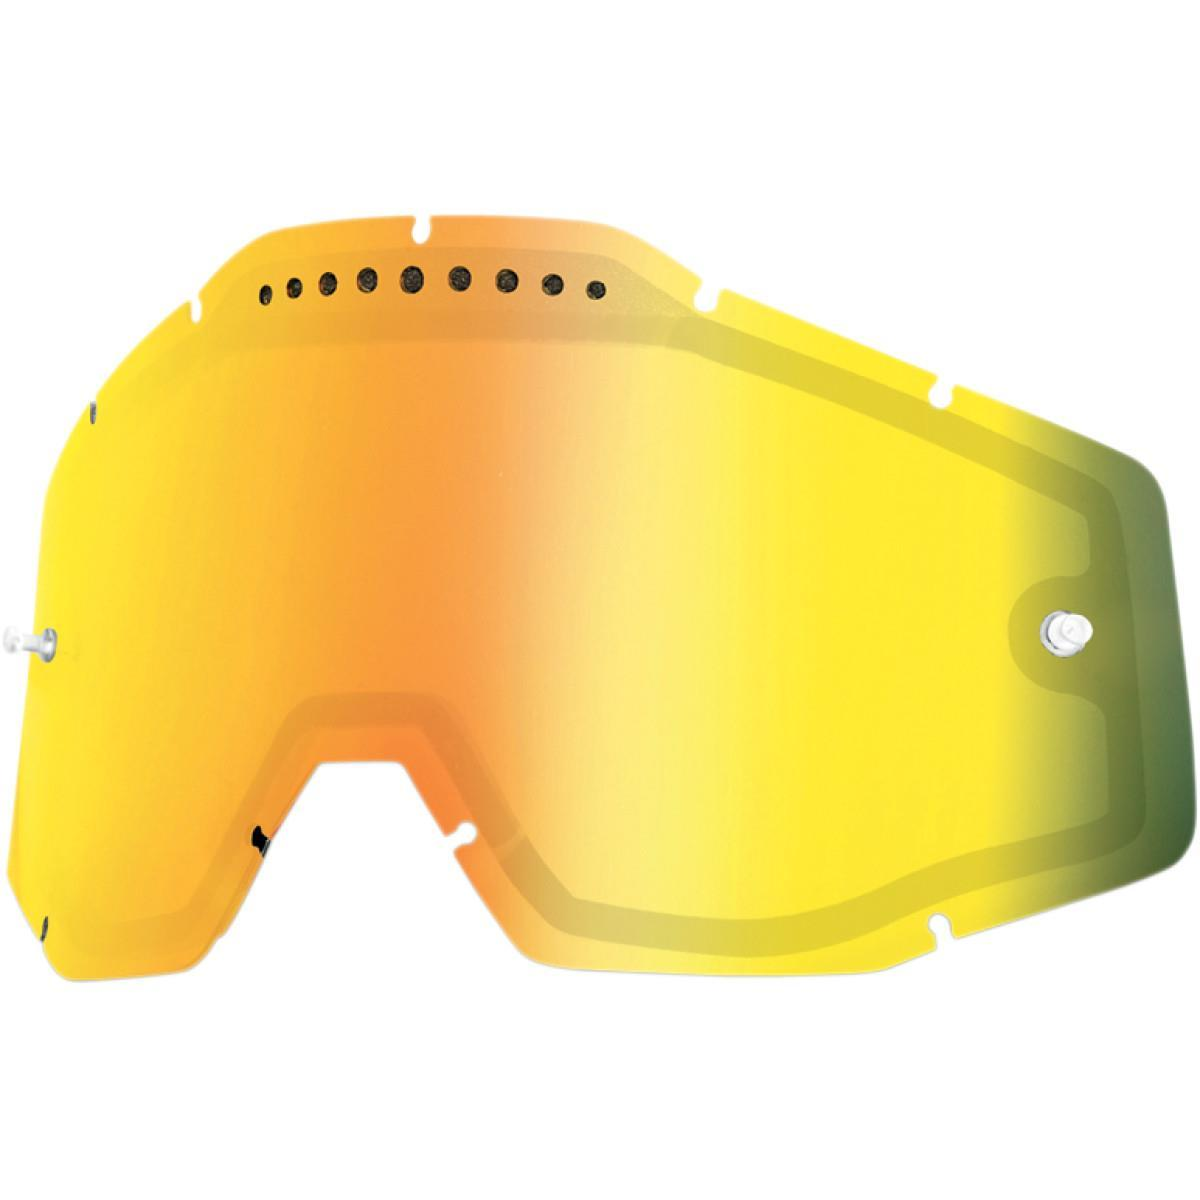 100% Dual Goggle Lens Gold Mirror